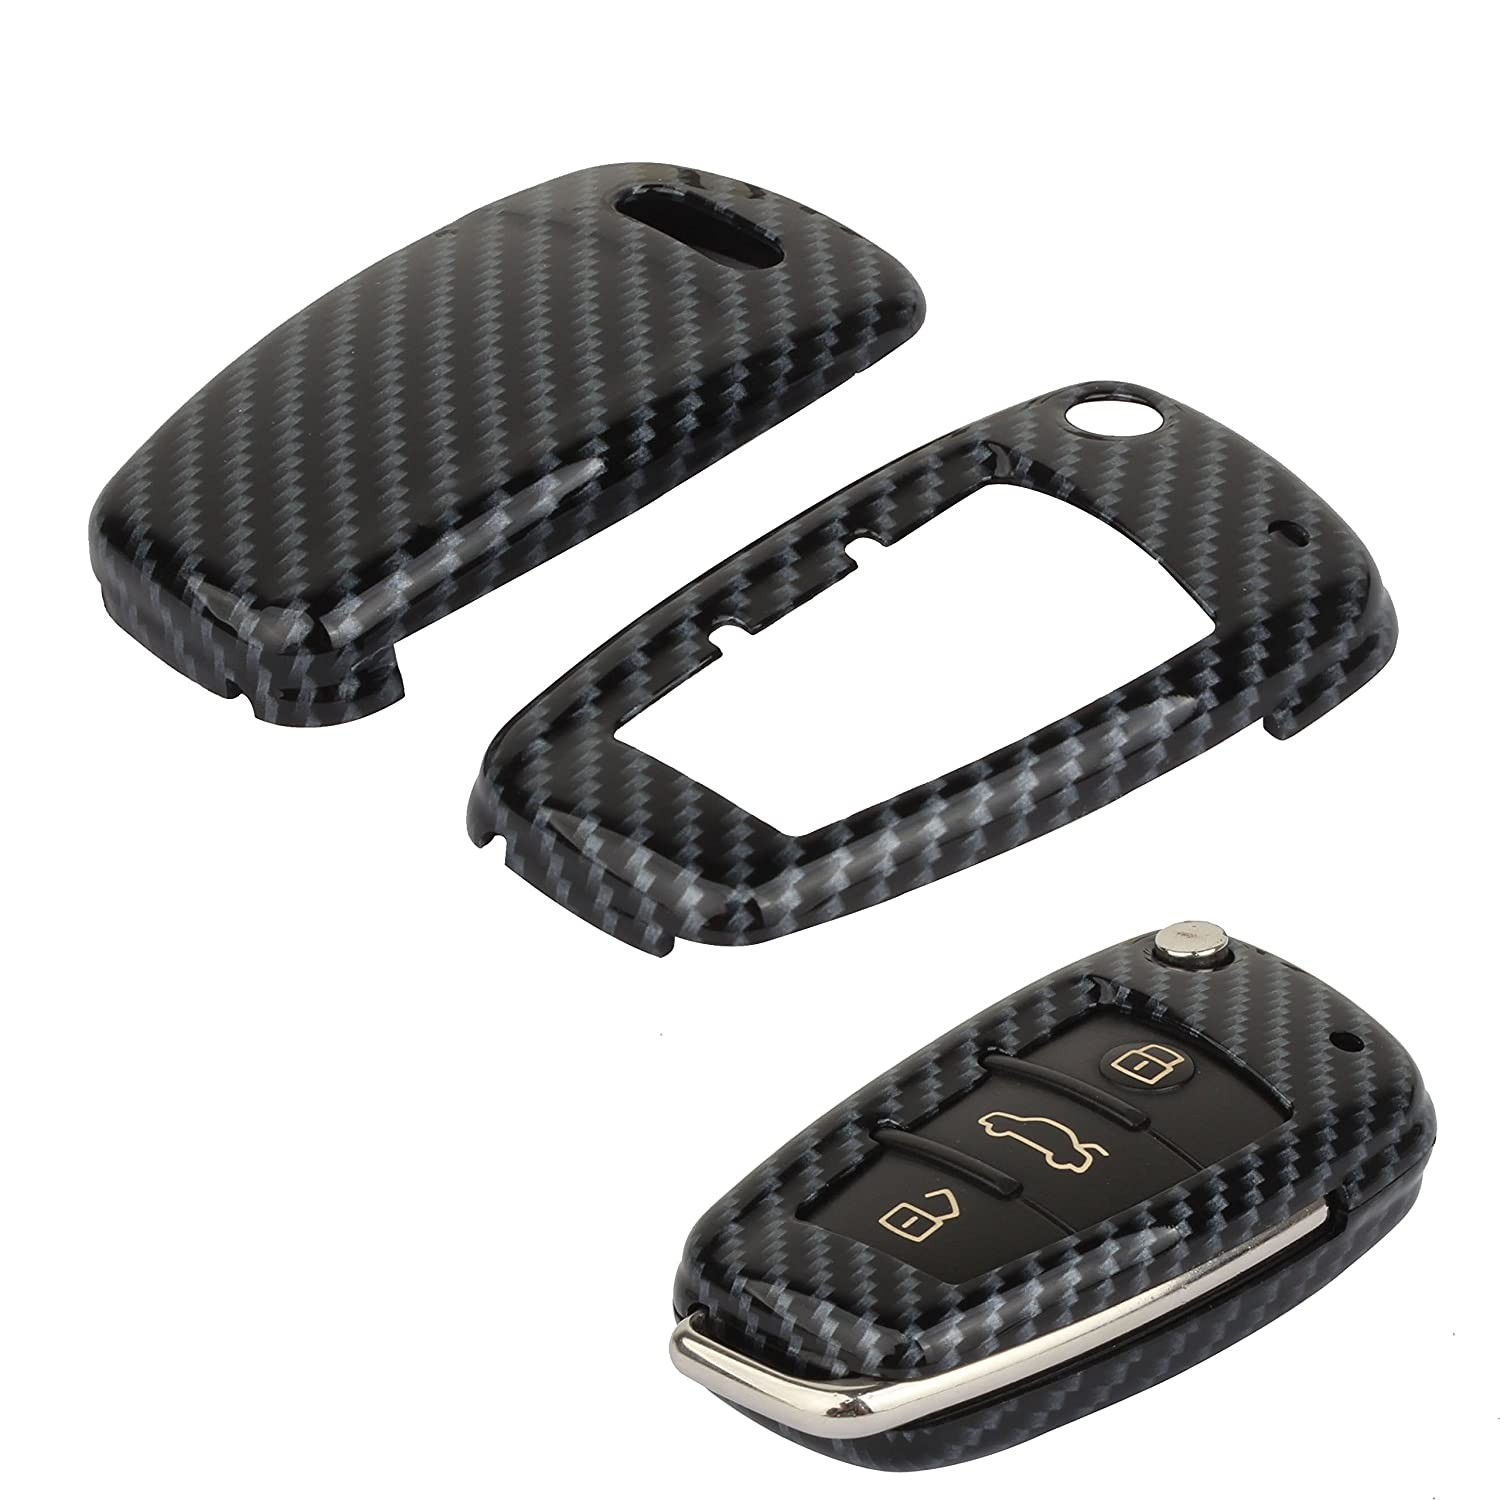 Pack of 2 TOMALL Silicone Key Cover Black for Audi A3 A4 A6 A8 TT Q7 3 Buttons Smart Remote Key